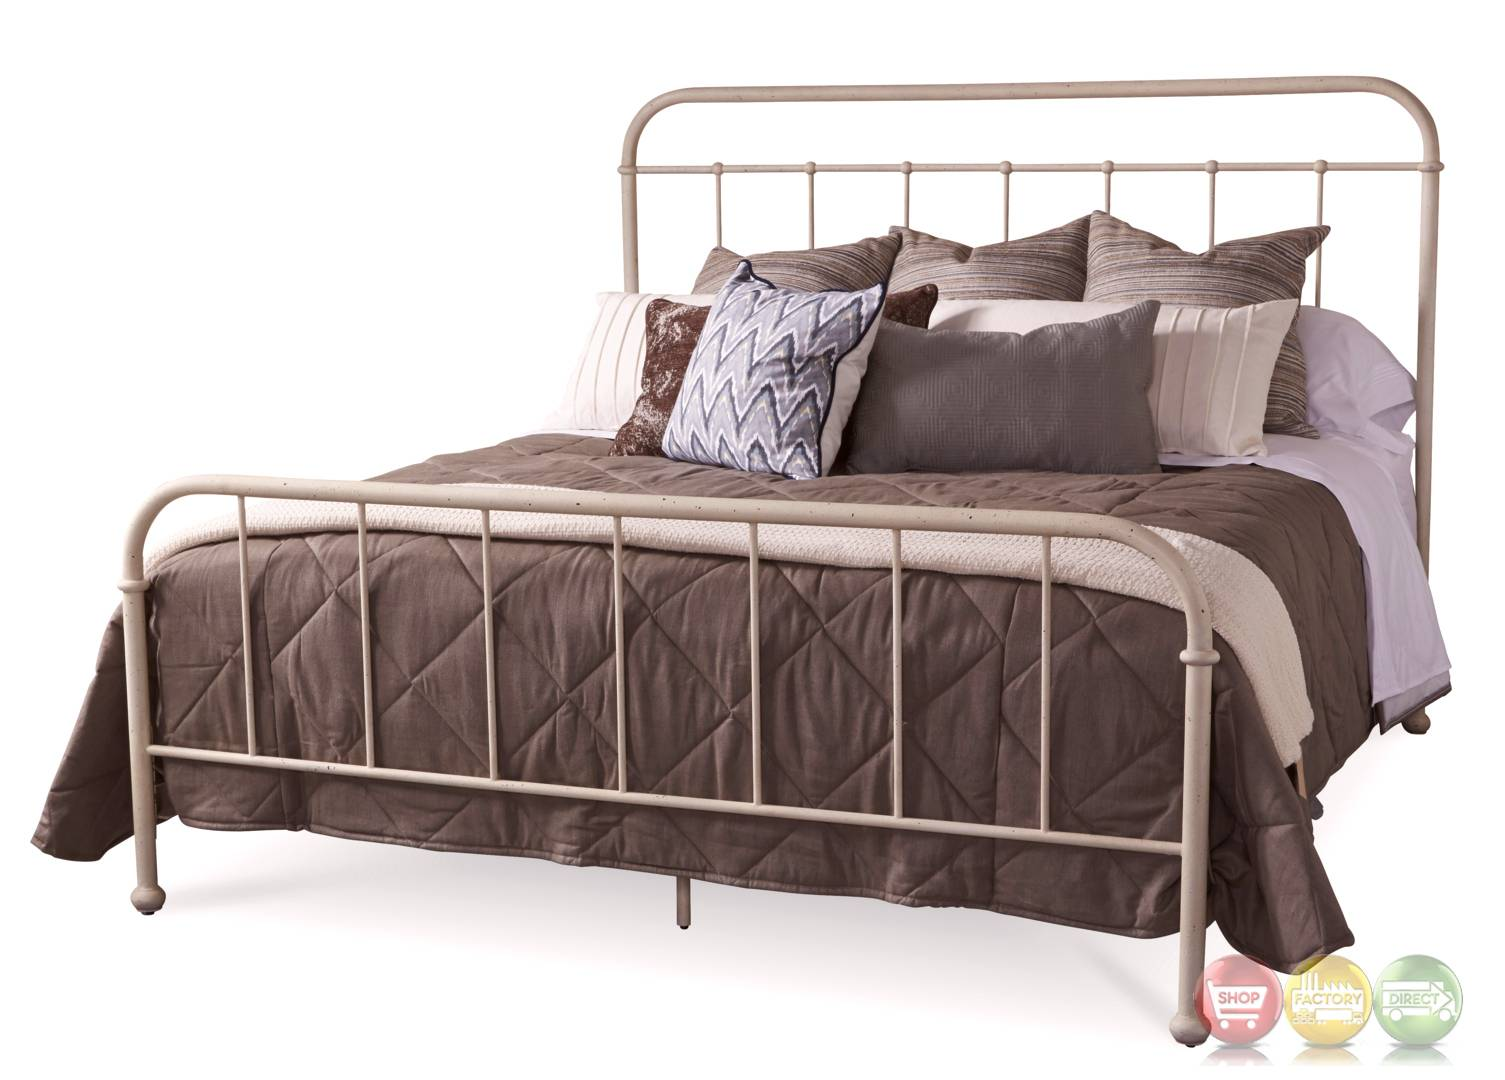 Williamsburg Queen Metal Frame Bed White Distressed Finish